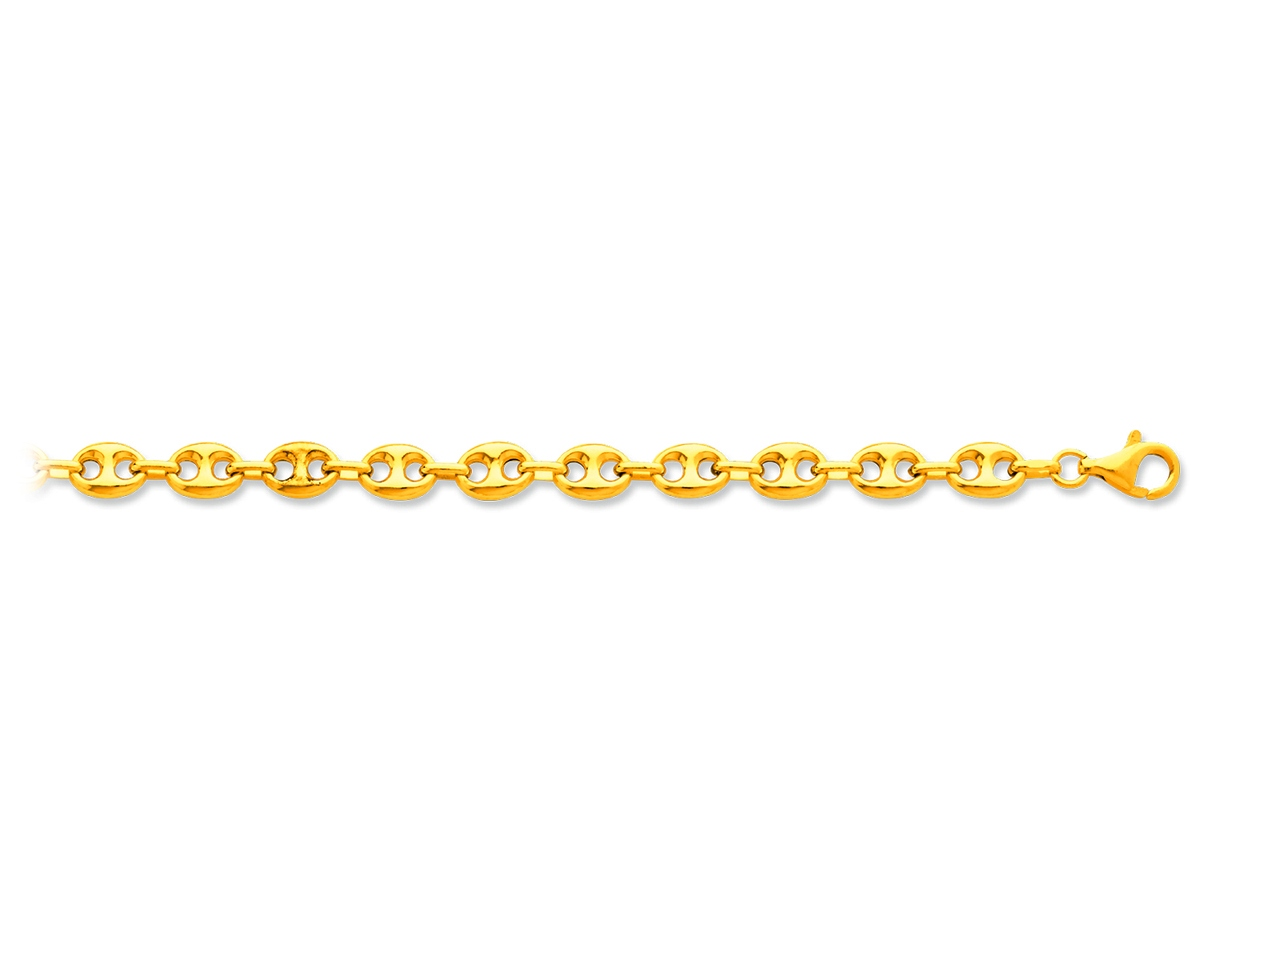 Collier maille grains de cafés creux, Or jaune 18k, 7,3 mm, 60 cm